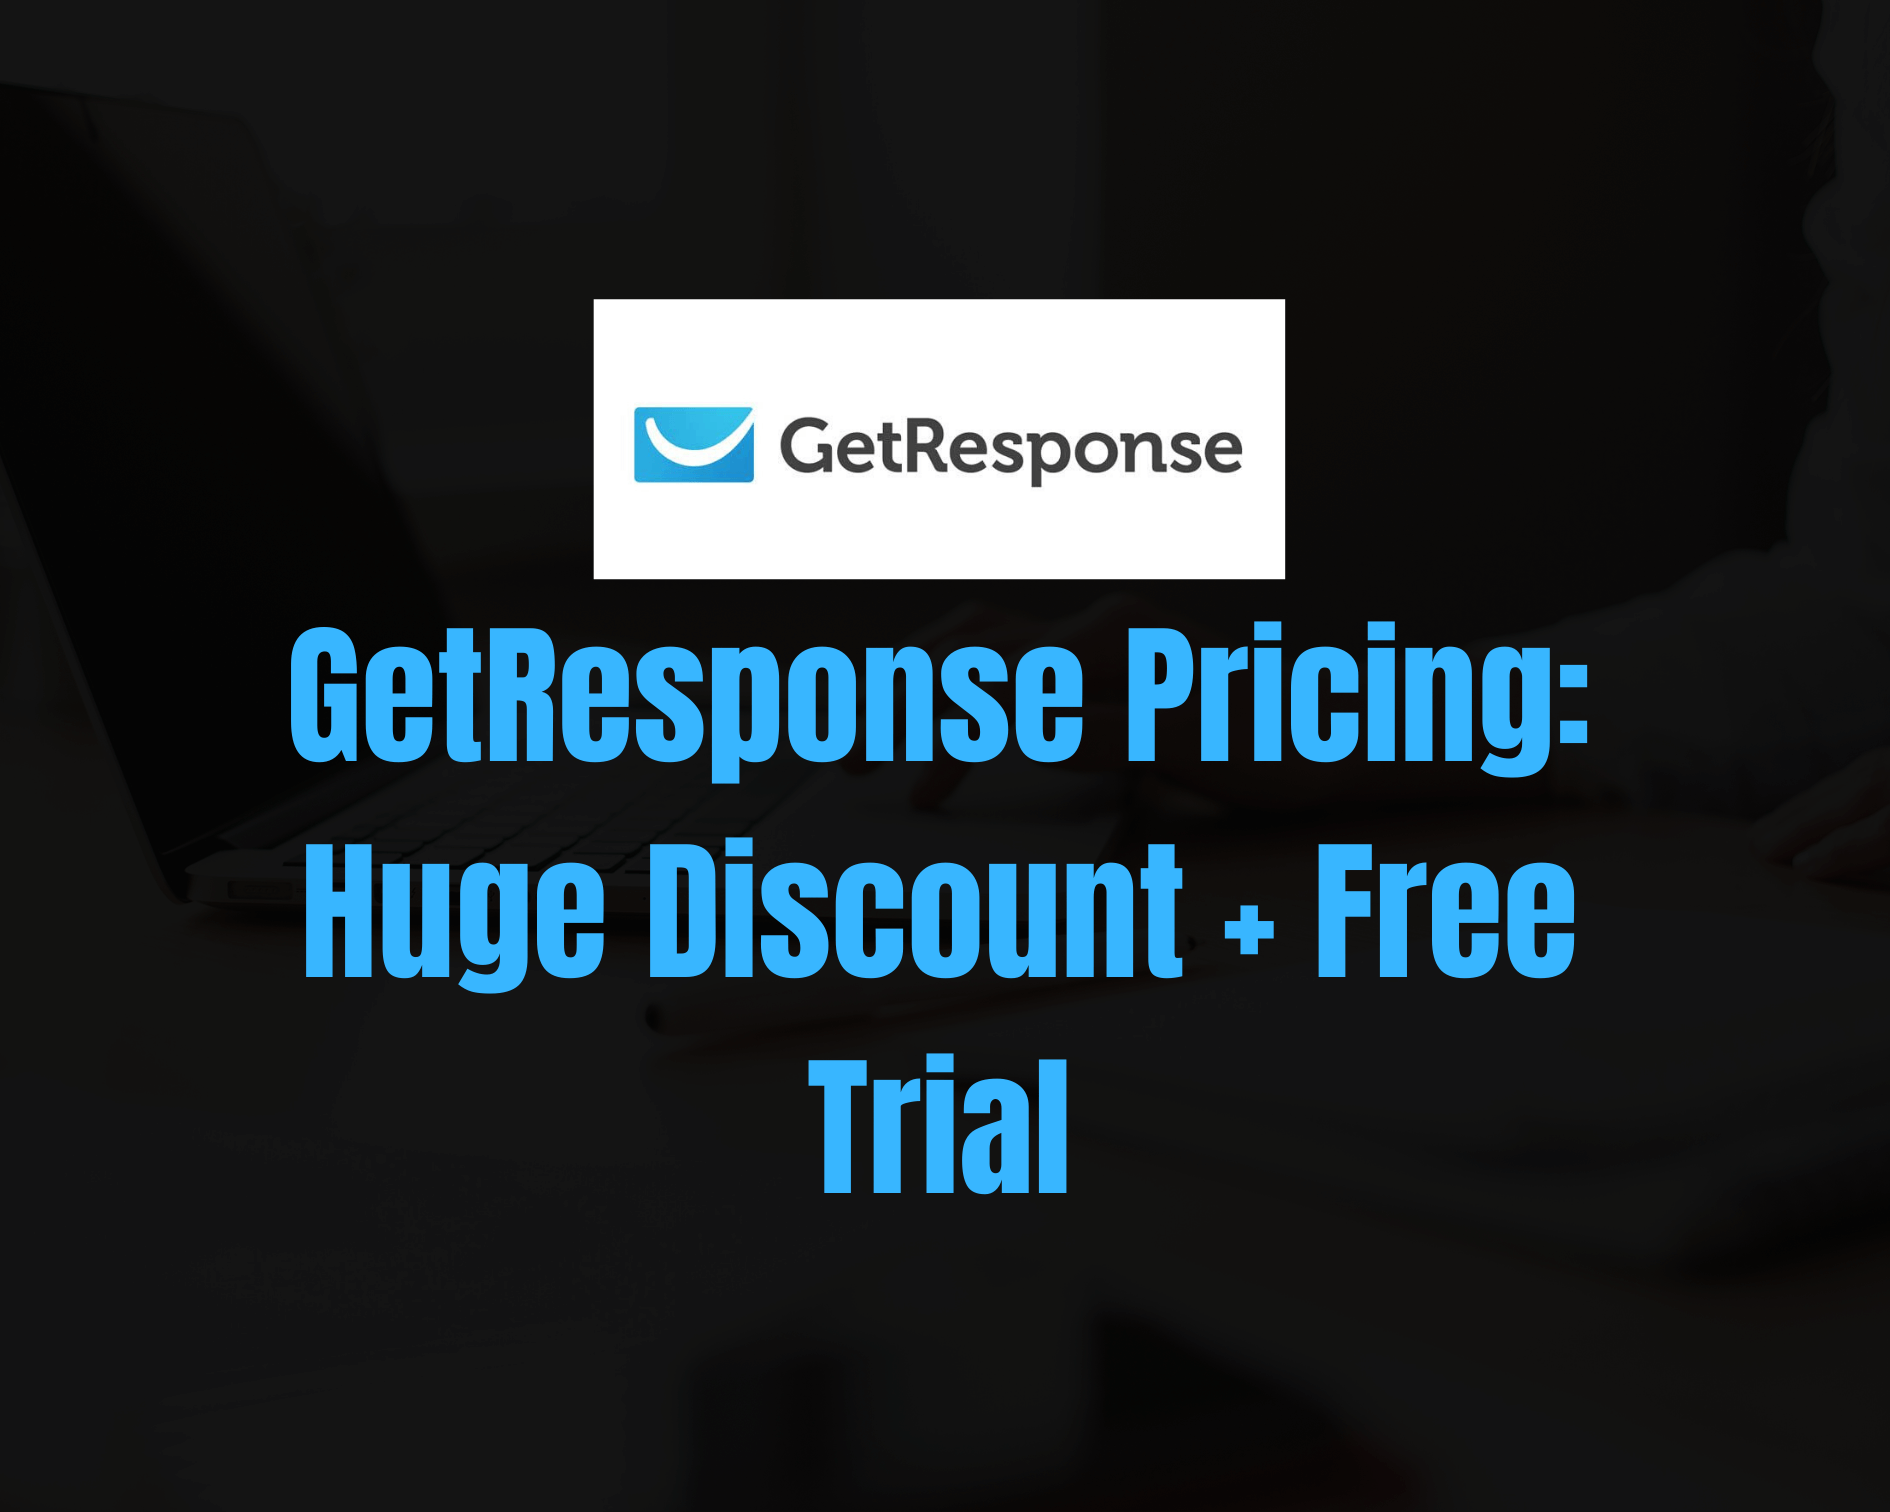 GetResponse Pricing: 18% Discount + 30 Days Free Trial